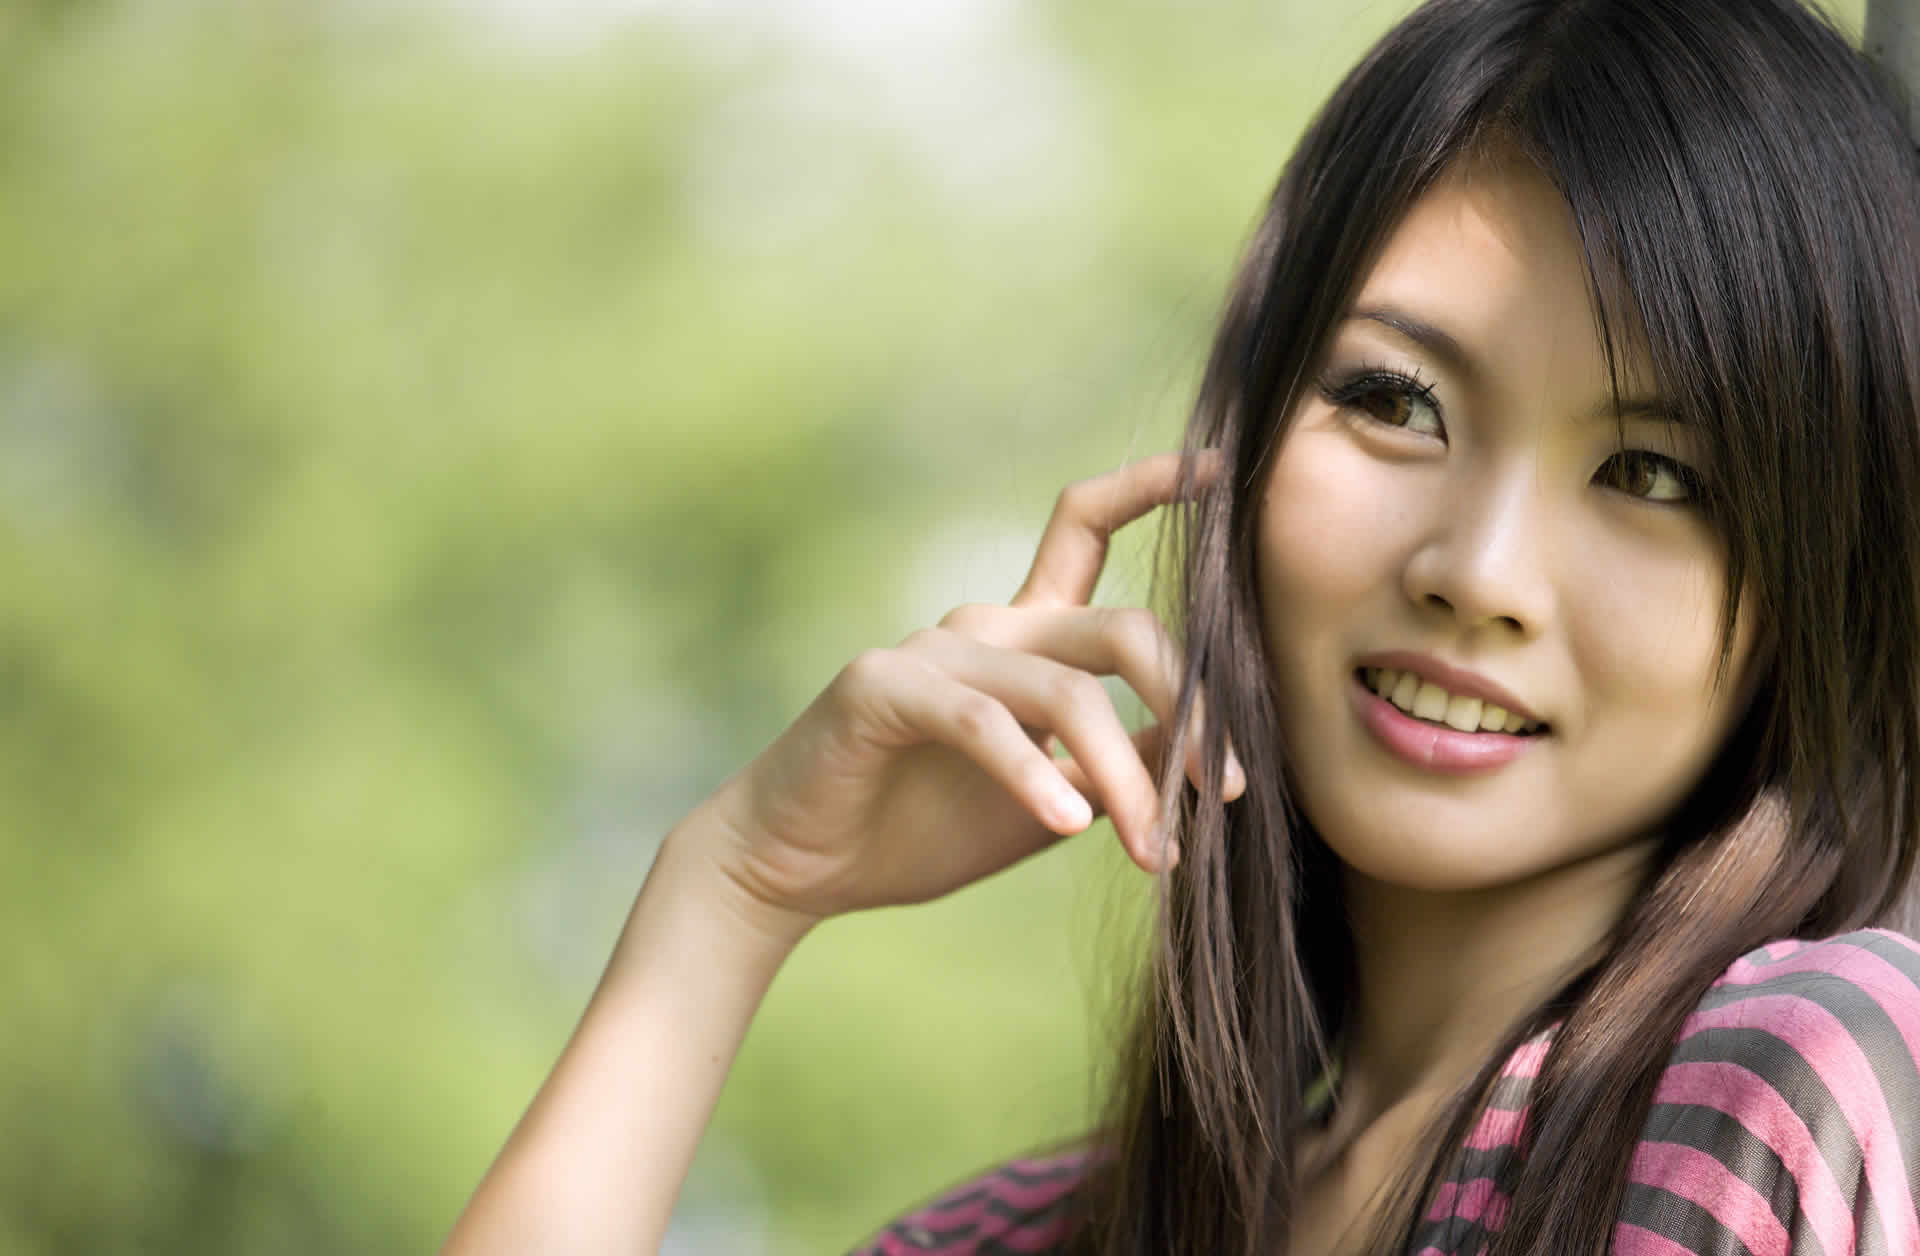 100 free asian dating sites in the usa